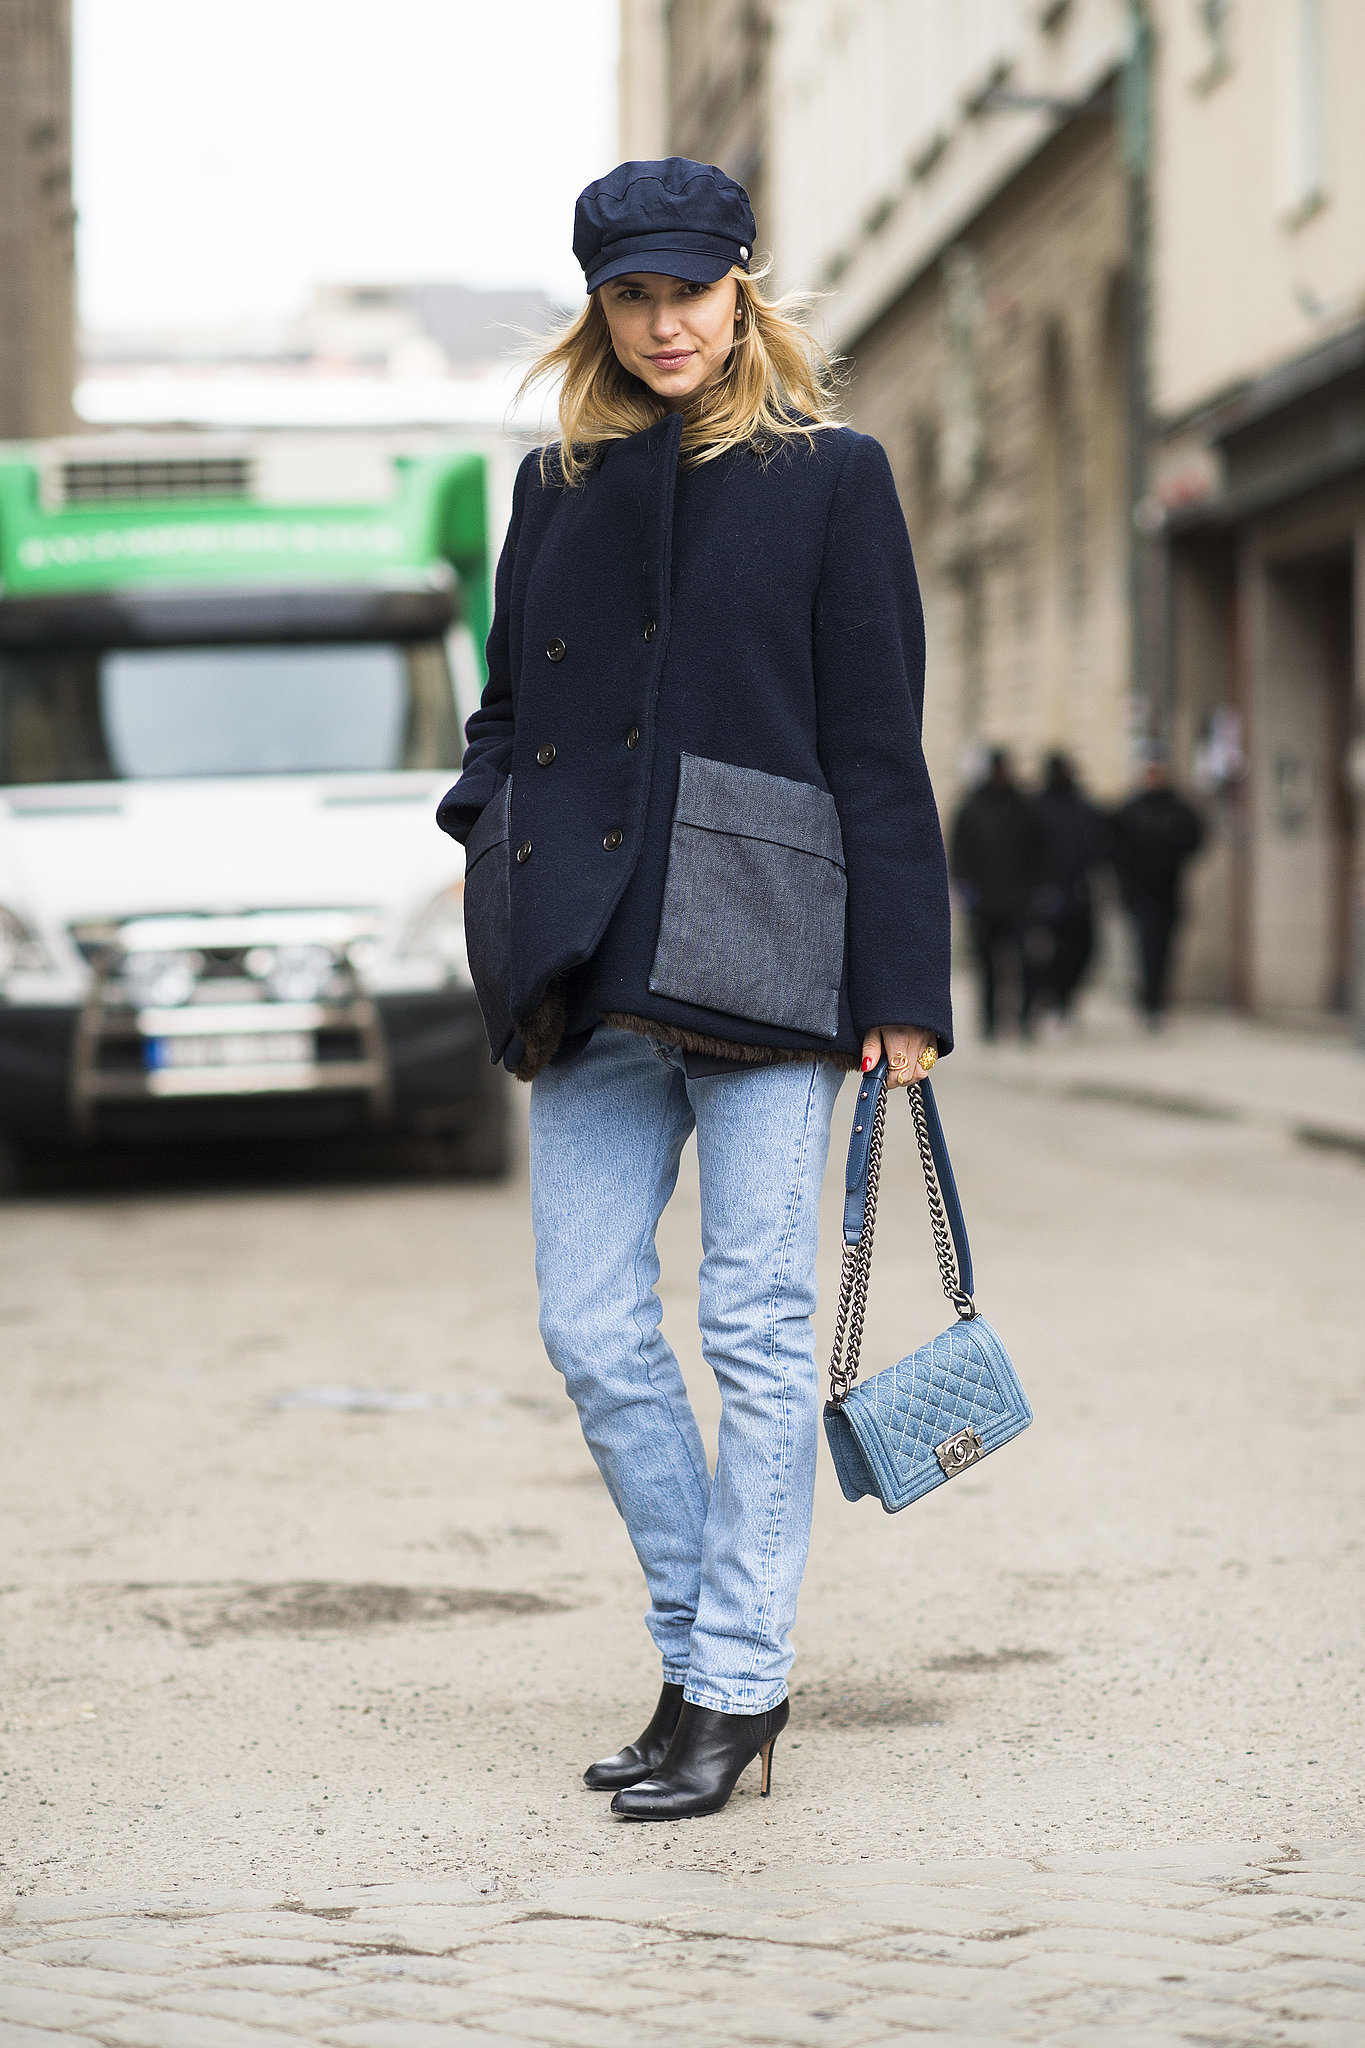 Her hat may say tomboy, but that Chanel bag says fashion darling.  Source: Le 21ème   Adam Katz Sinding